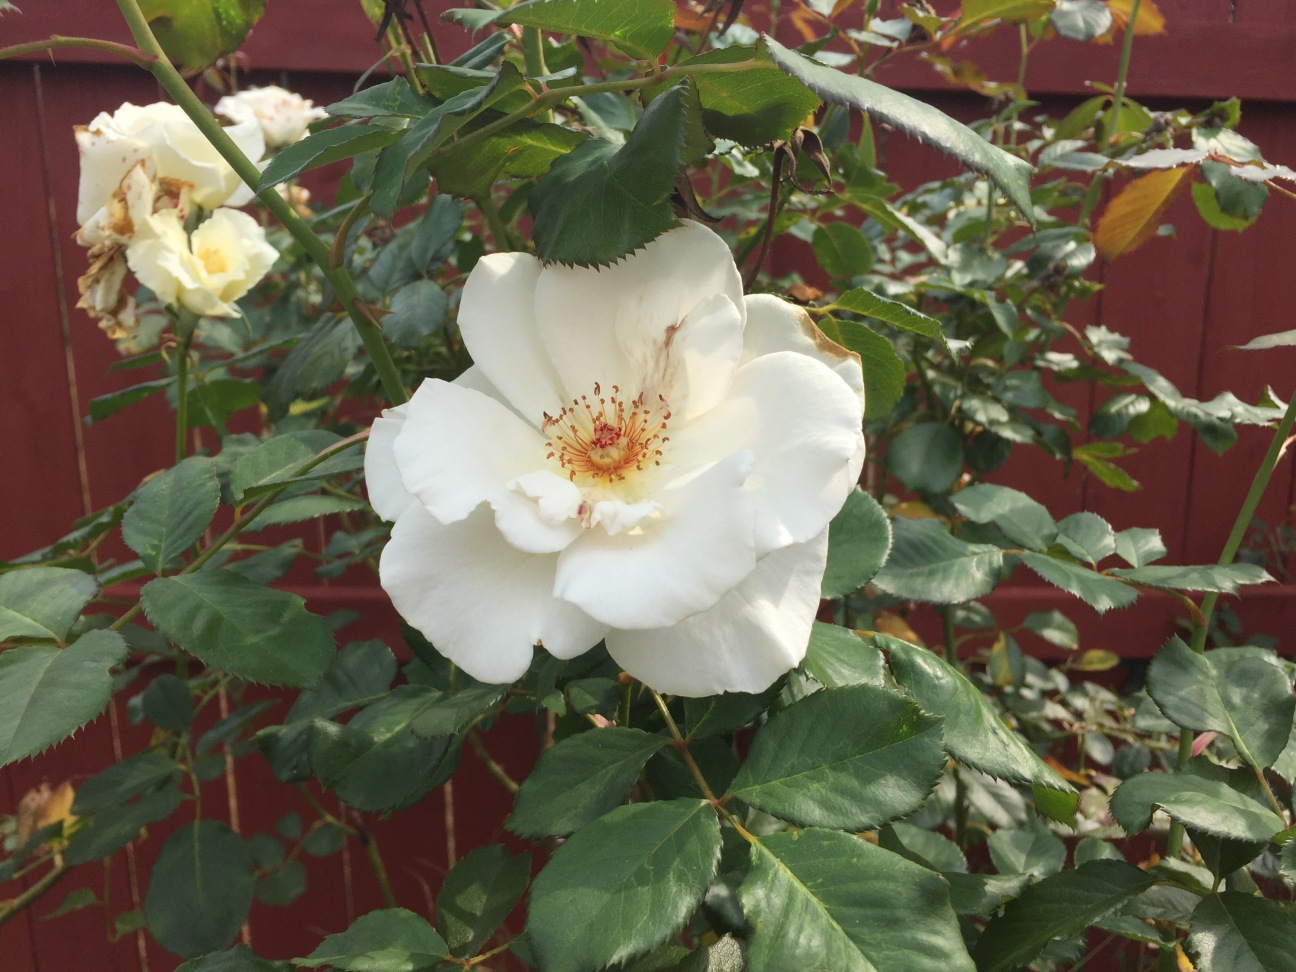 New... New fall blooms on my rose bushes.